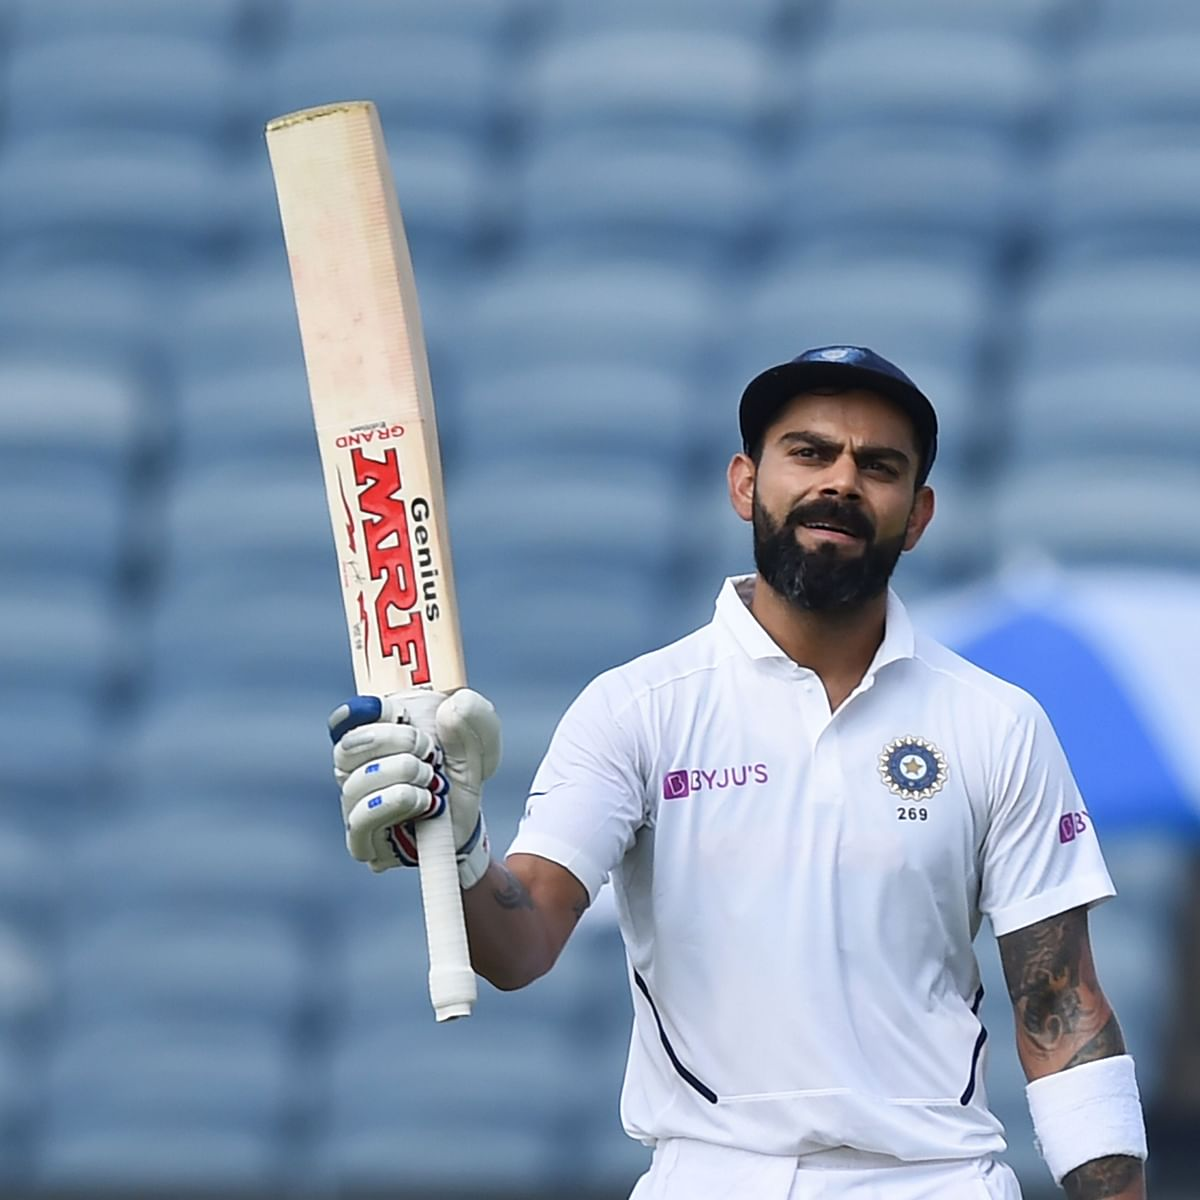 T20 World Cup 2020 is big focus: Virat Kohli